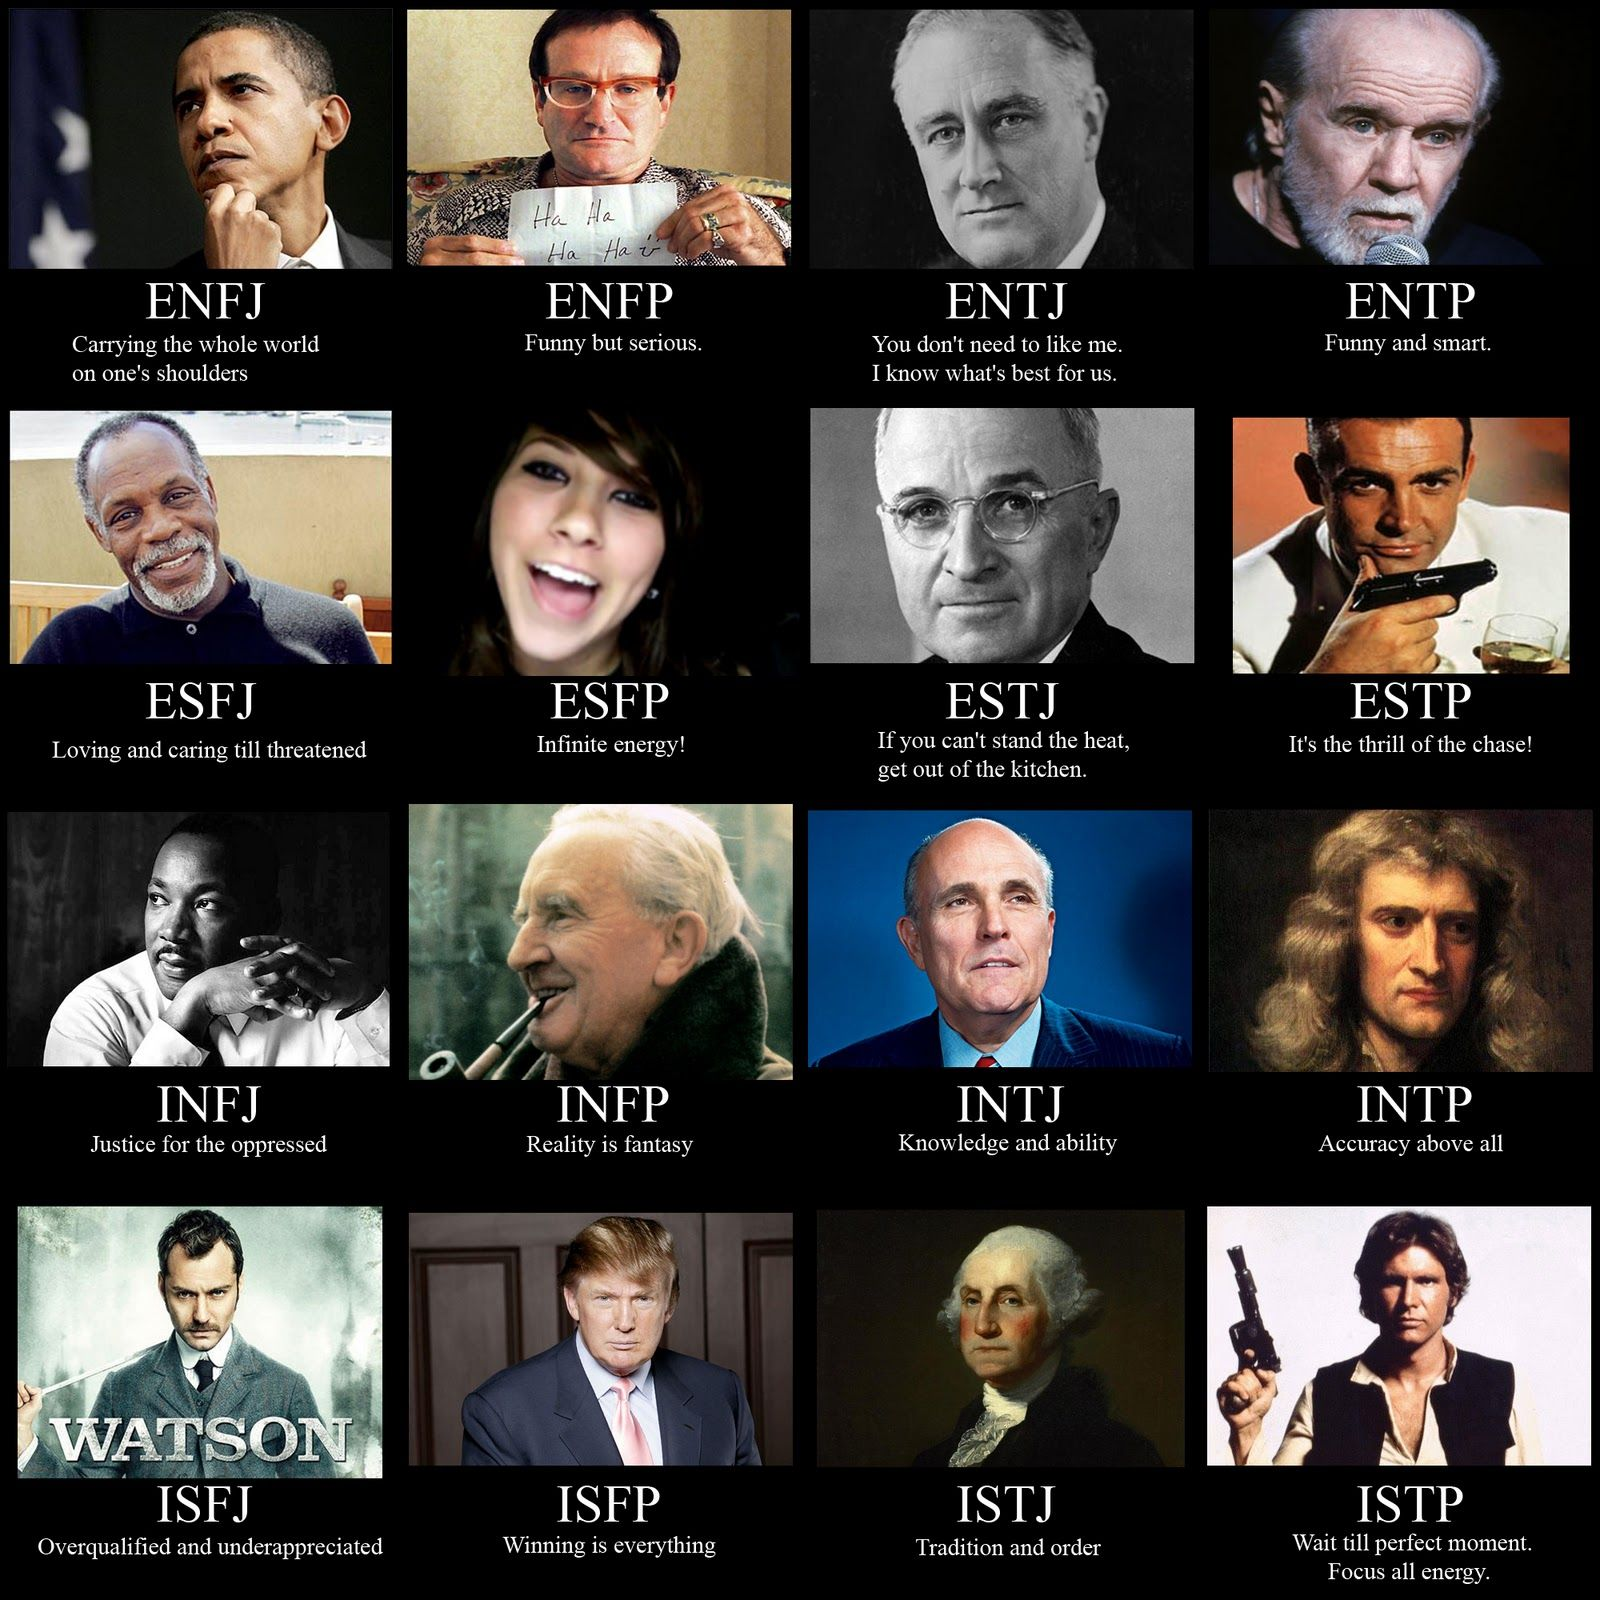 MBTI Obama is ENTP, not ENTJ  YOULL SEE MORE OF HIS ENTP SHOW, ONCE